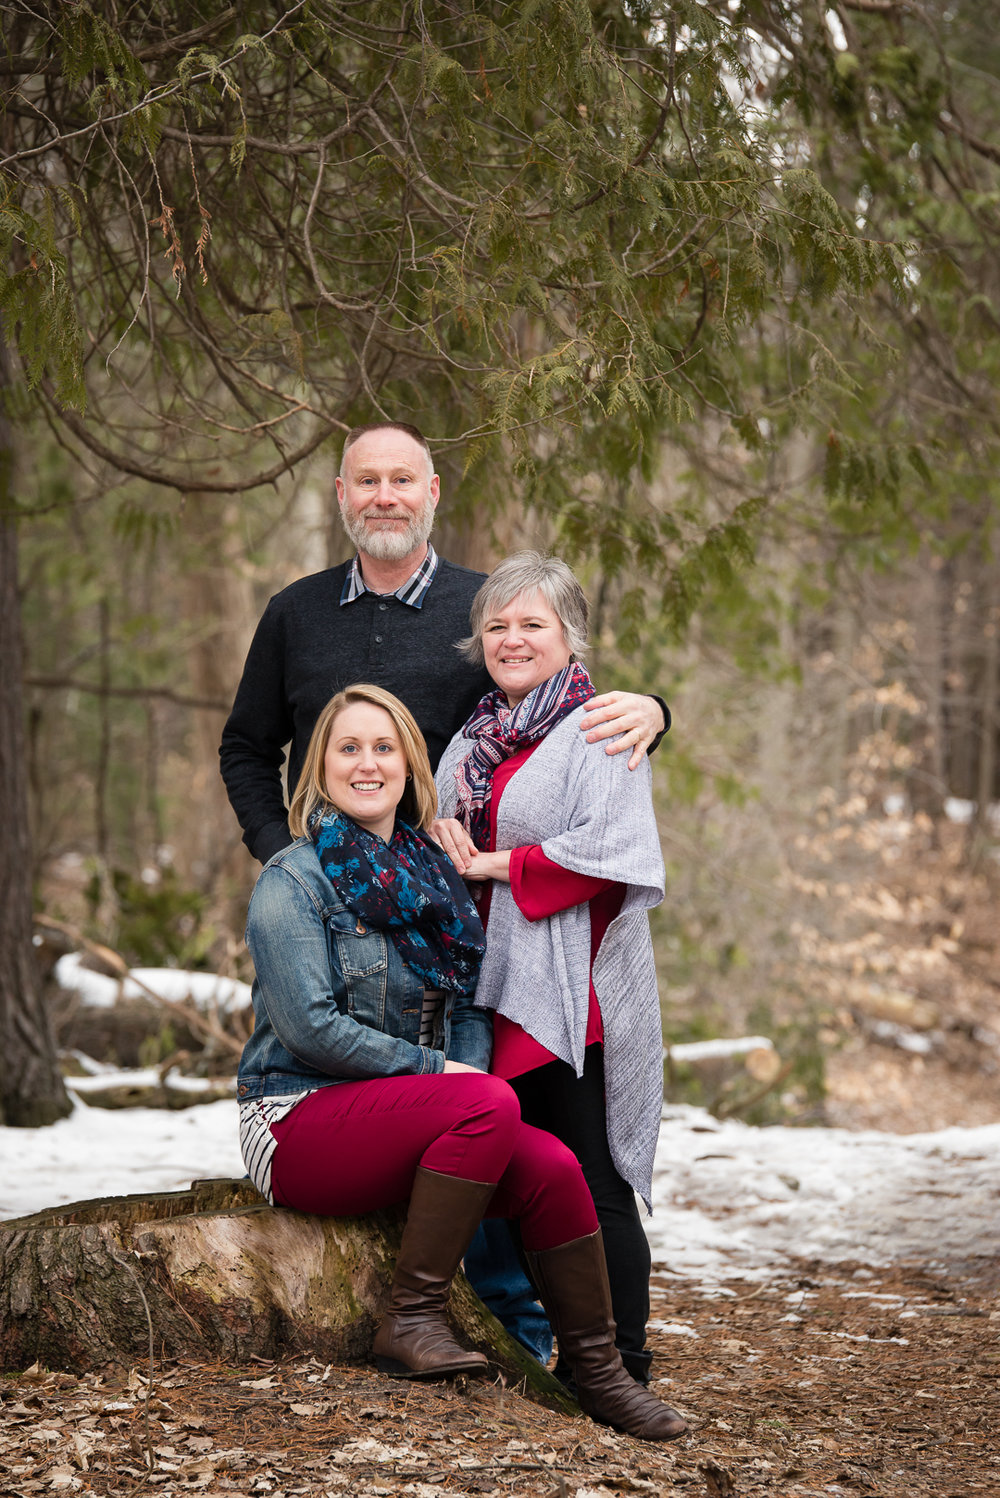 Naomi Lucienne Photography - Family - 170318191.jpg